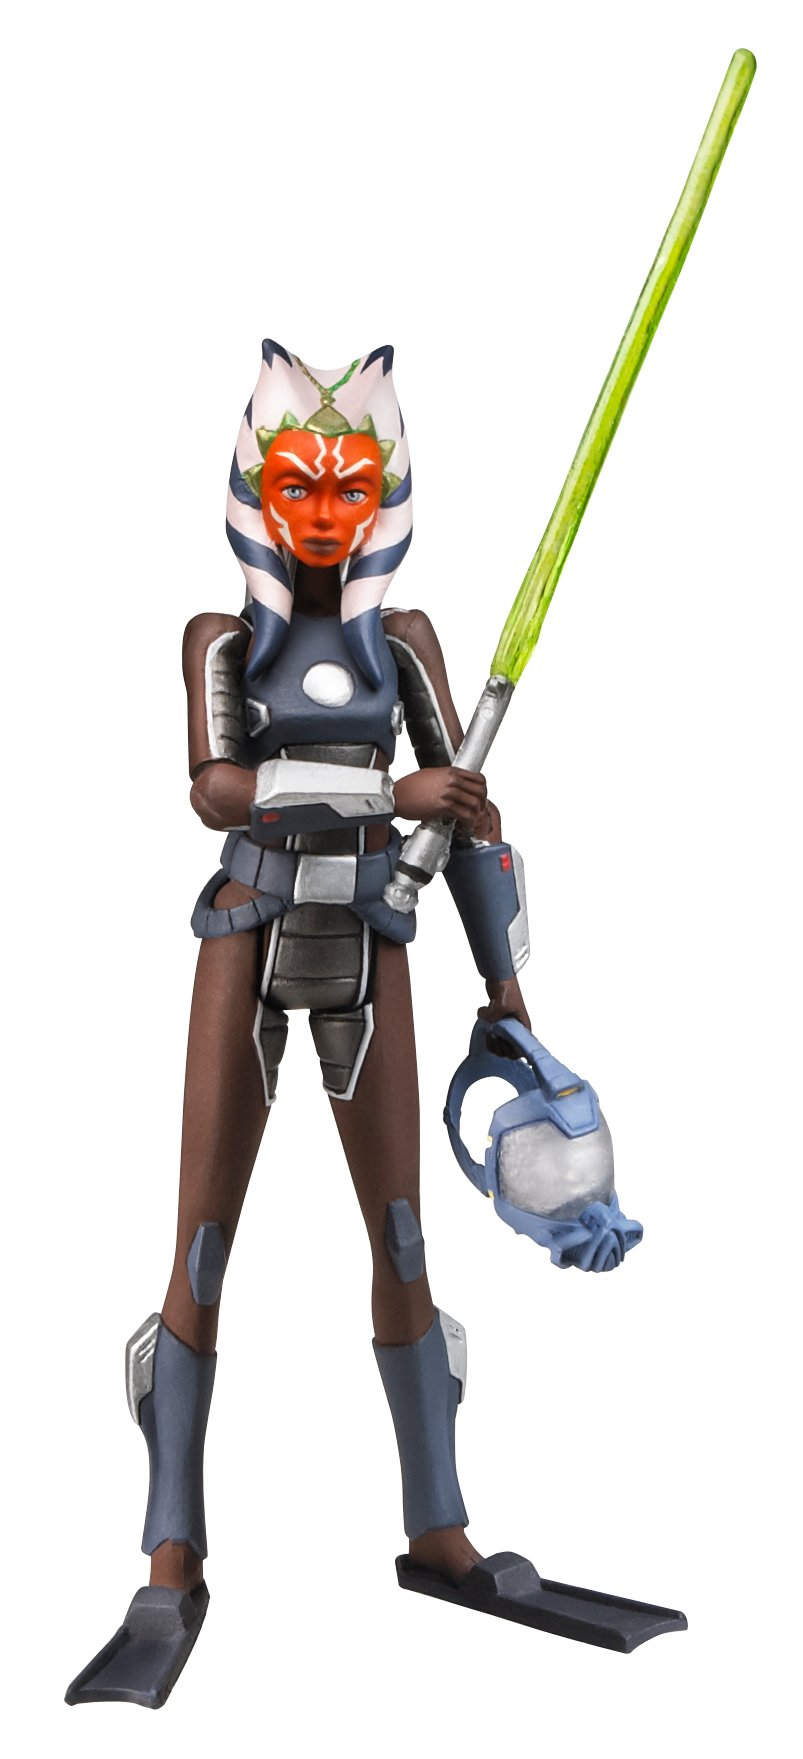 Star wars the clone wars rule 34